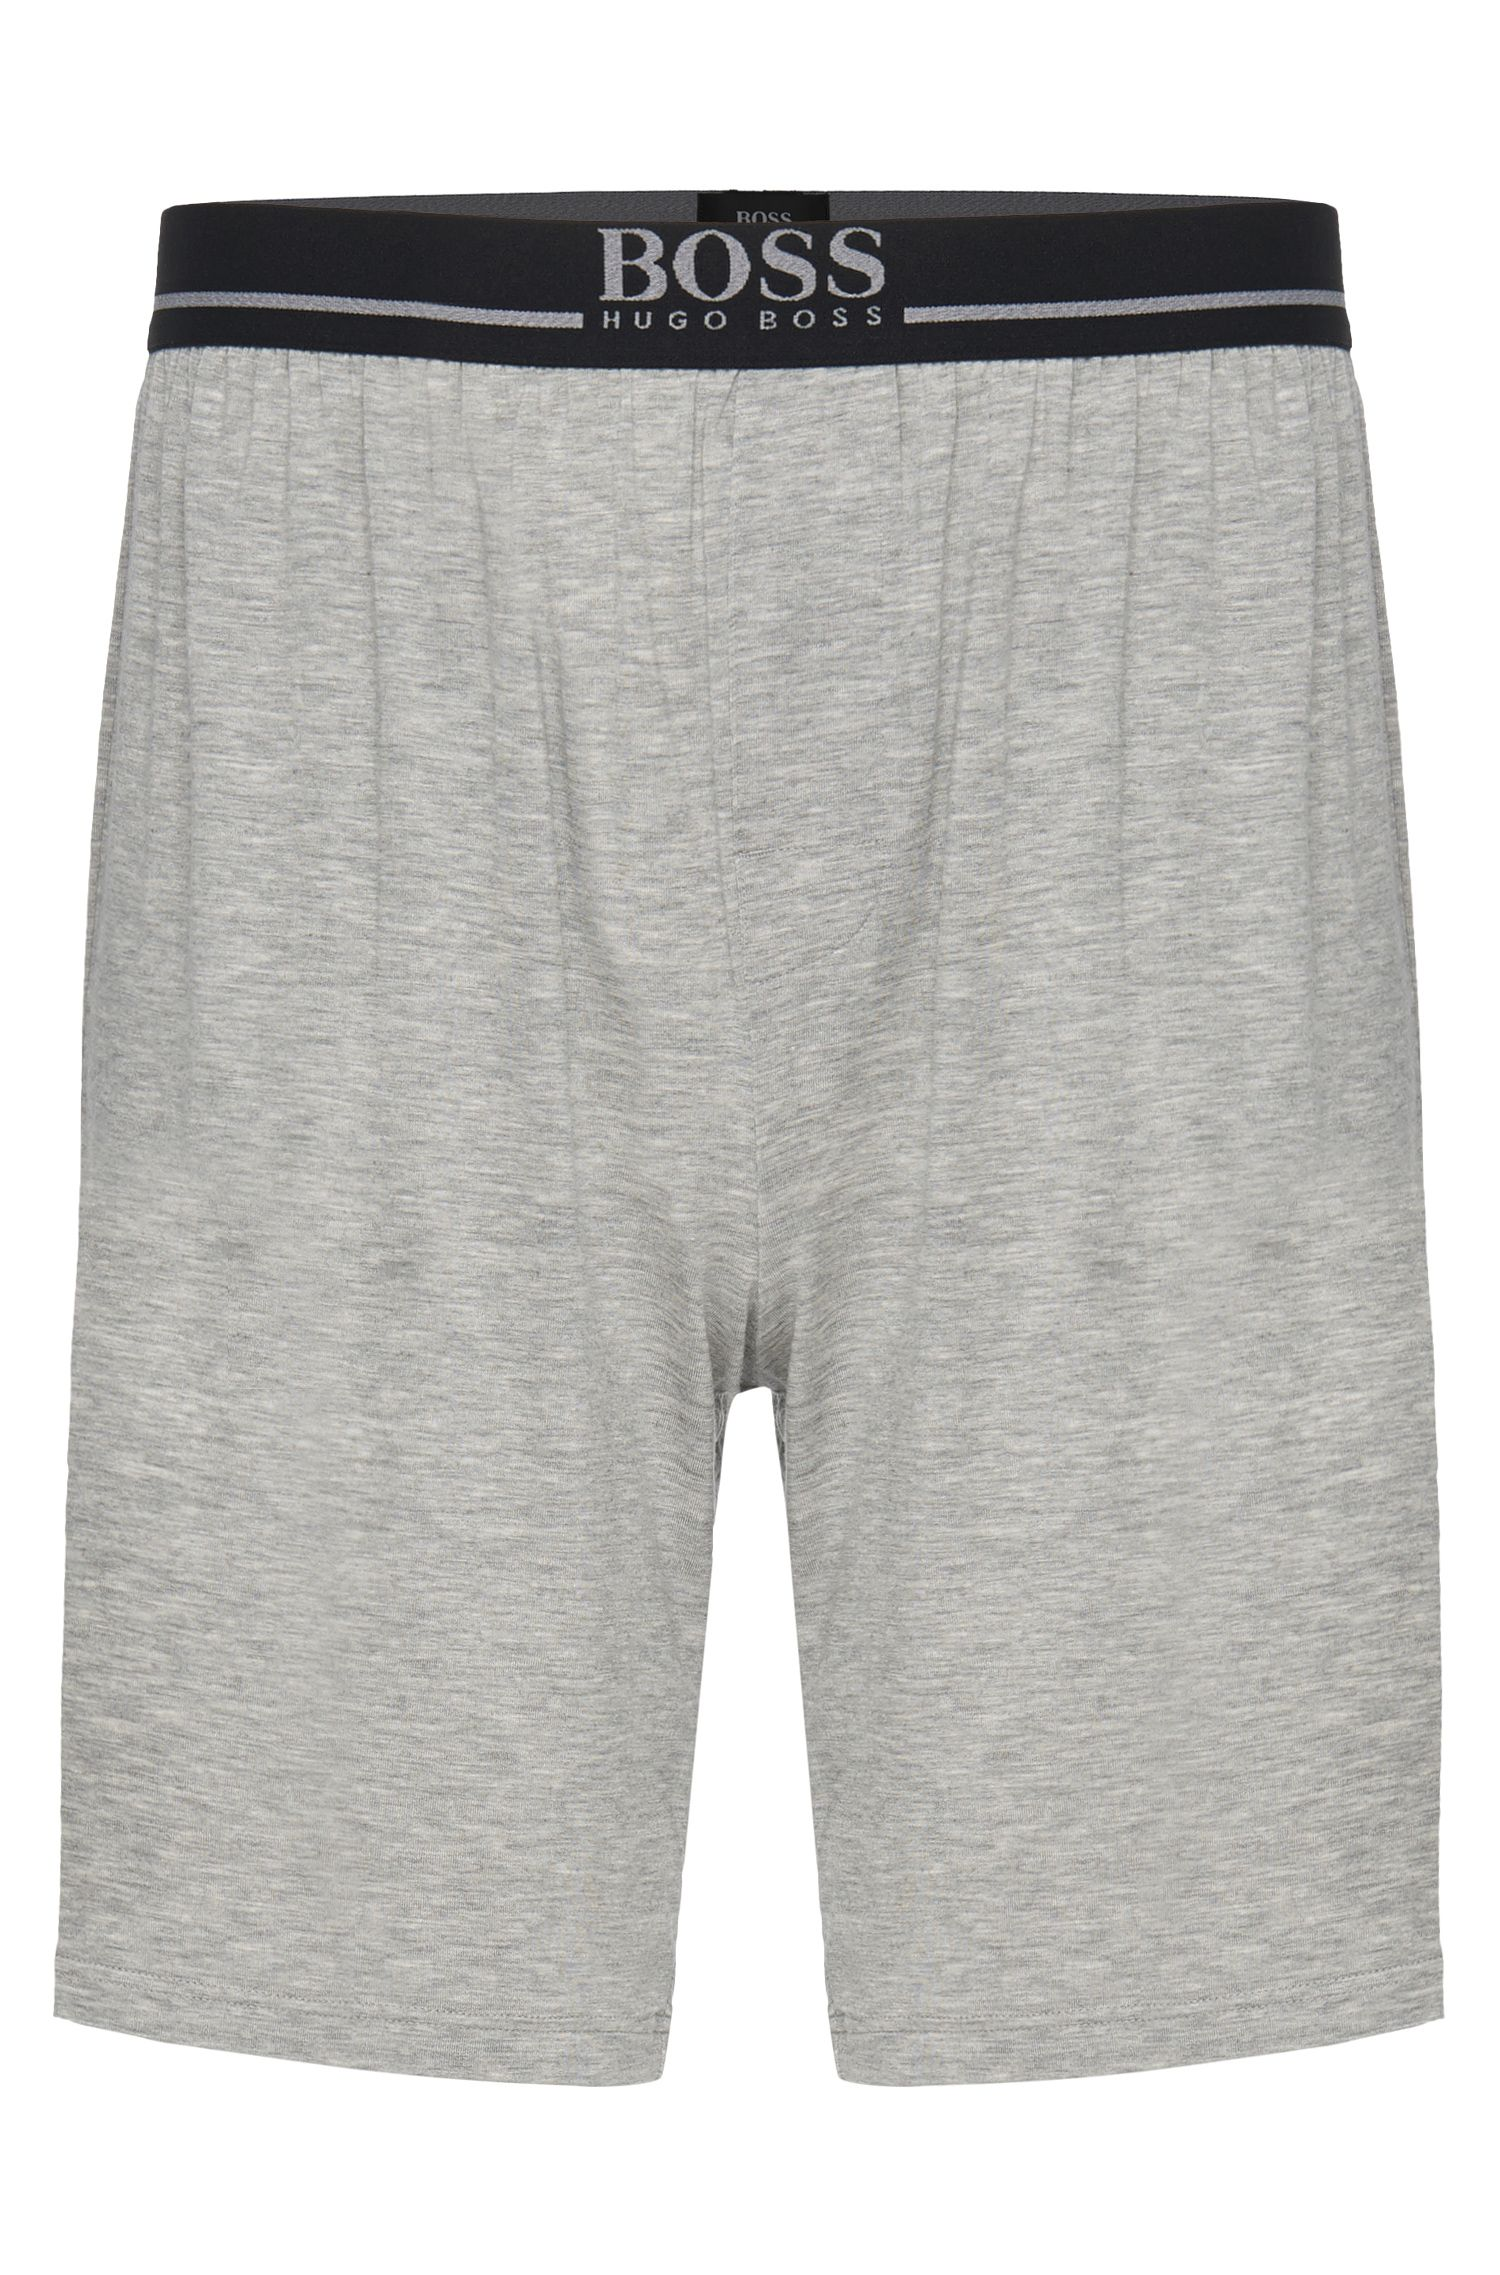 Stretch Modal Lounge Shorts | Short Pant EW, Grey